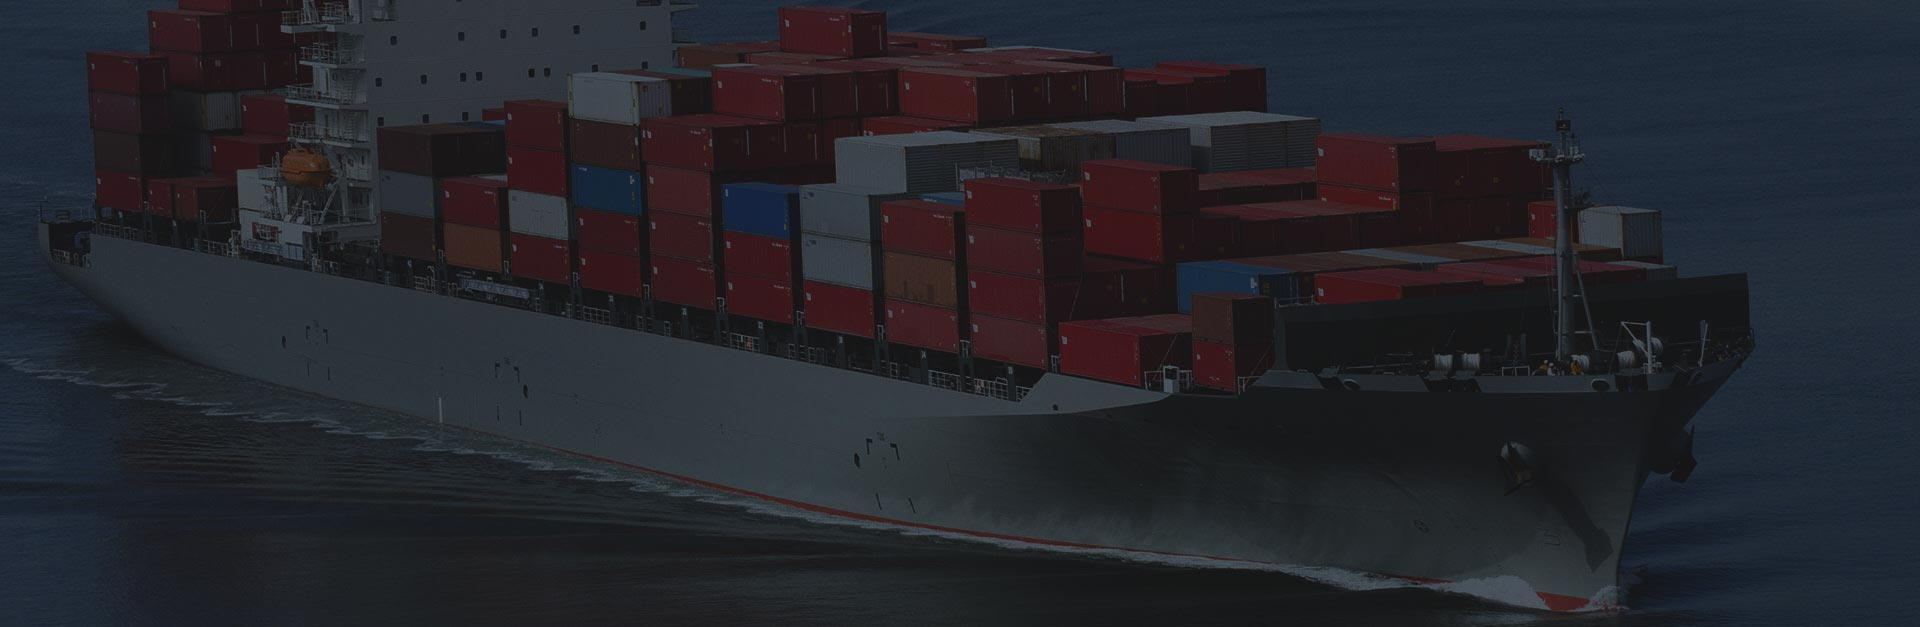 Shipping-From-China-To-US-Ocean-Freight-Services